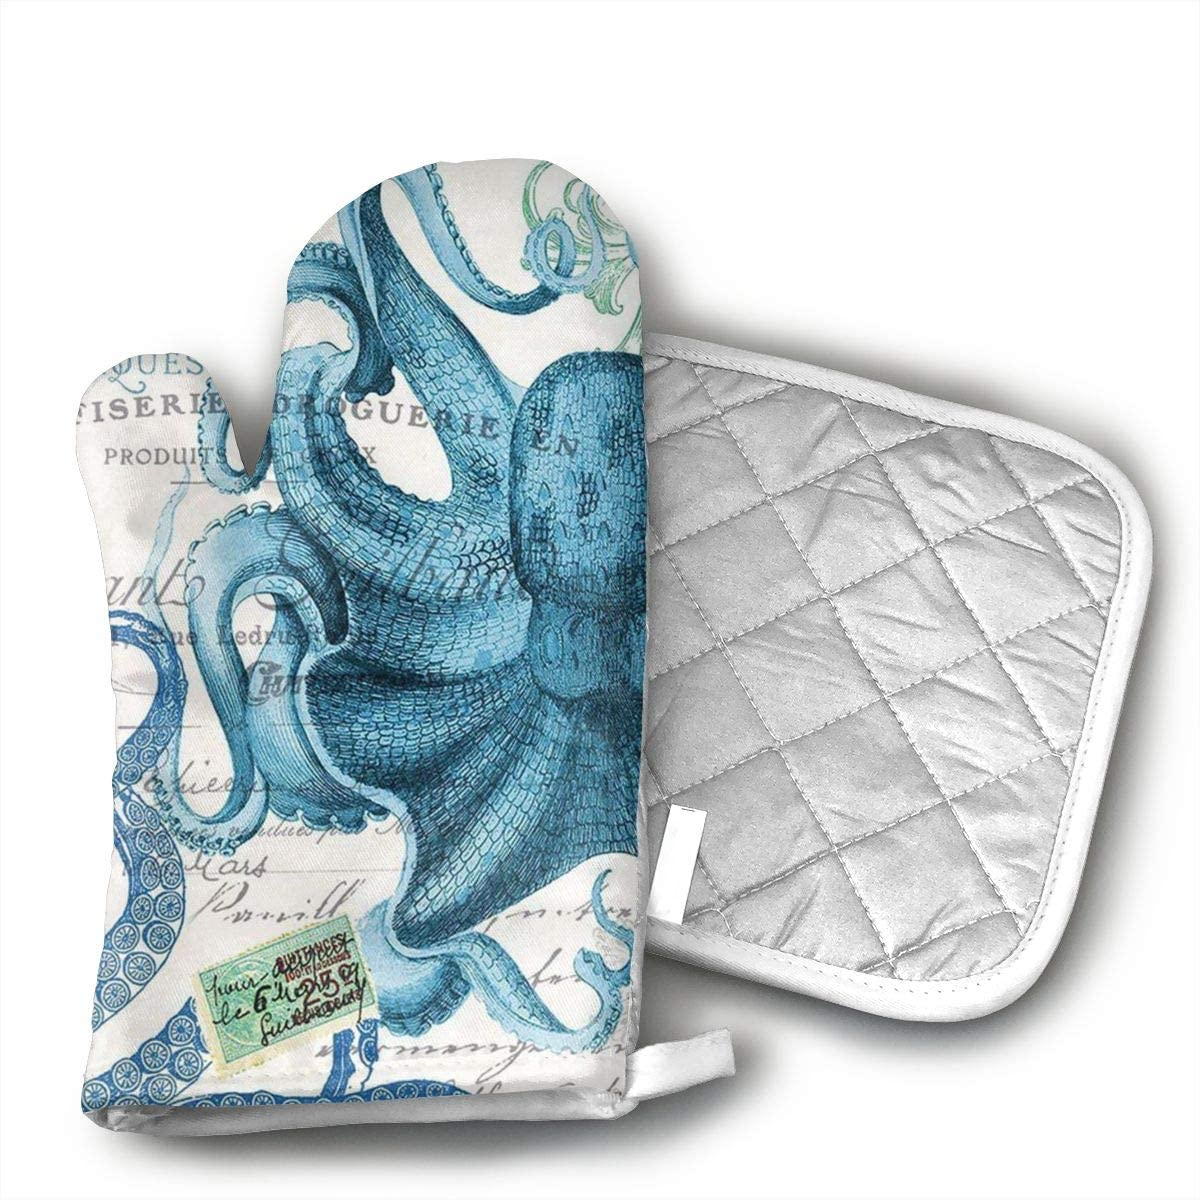 Octopus Oven Mitts and Potholders (2-Piece Sets) - Kitchen Set with Cotton Heat Resistant,Oven Gloves for BBQ Cooking Baking Grilling